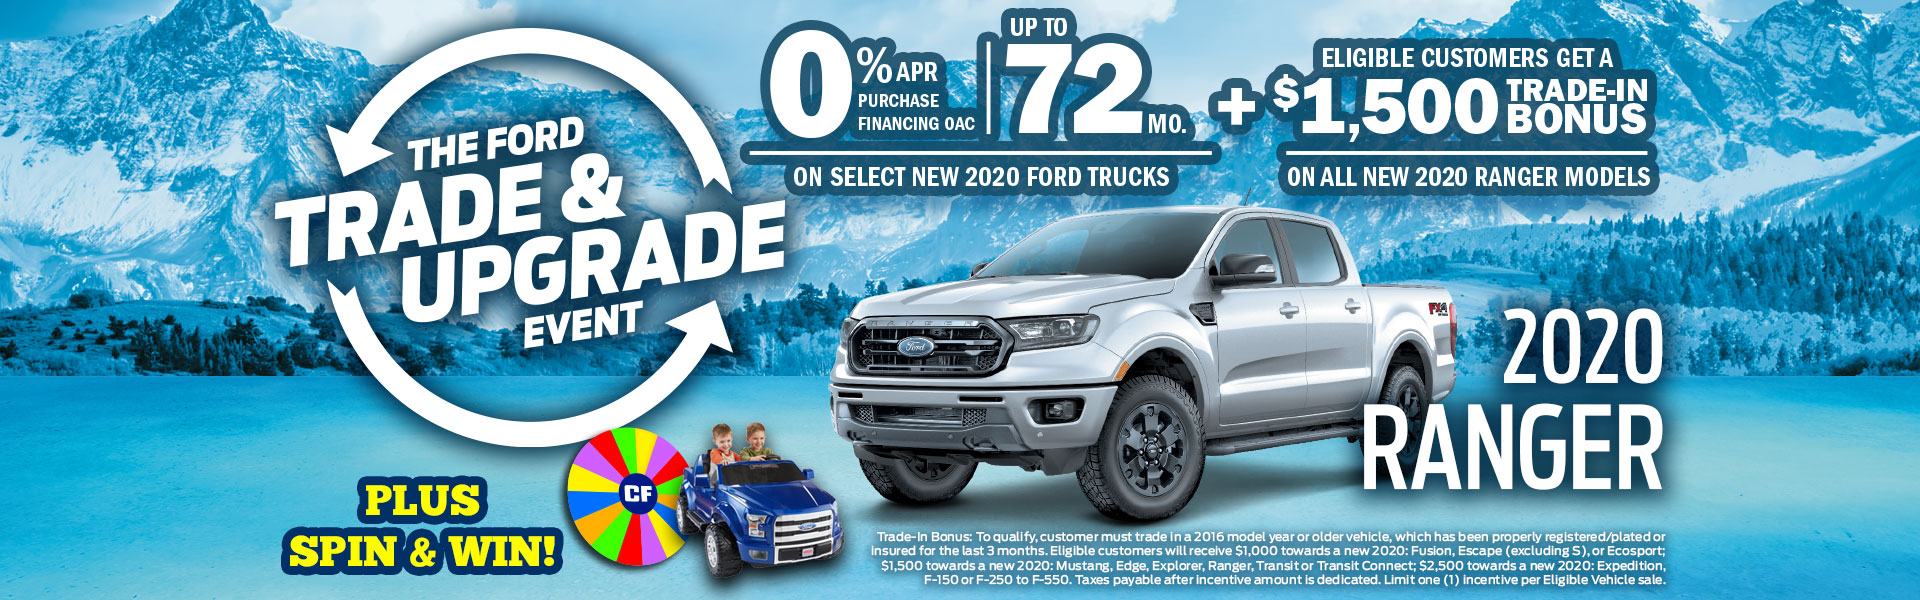 Ford Trade & Upgrade Event Ranger Sale